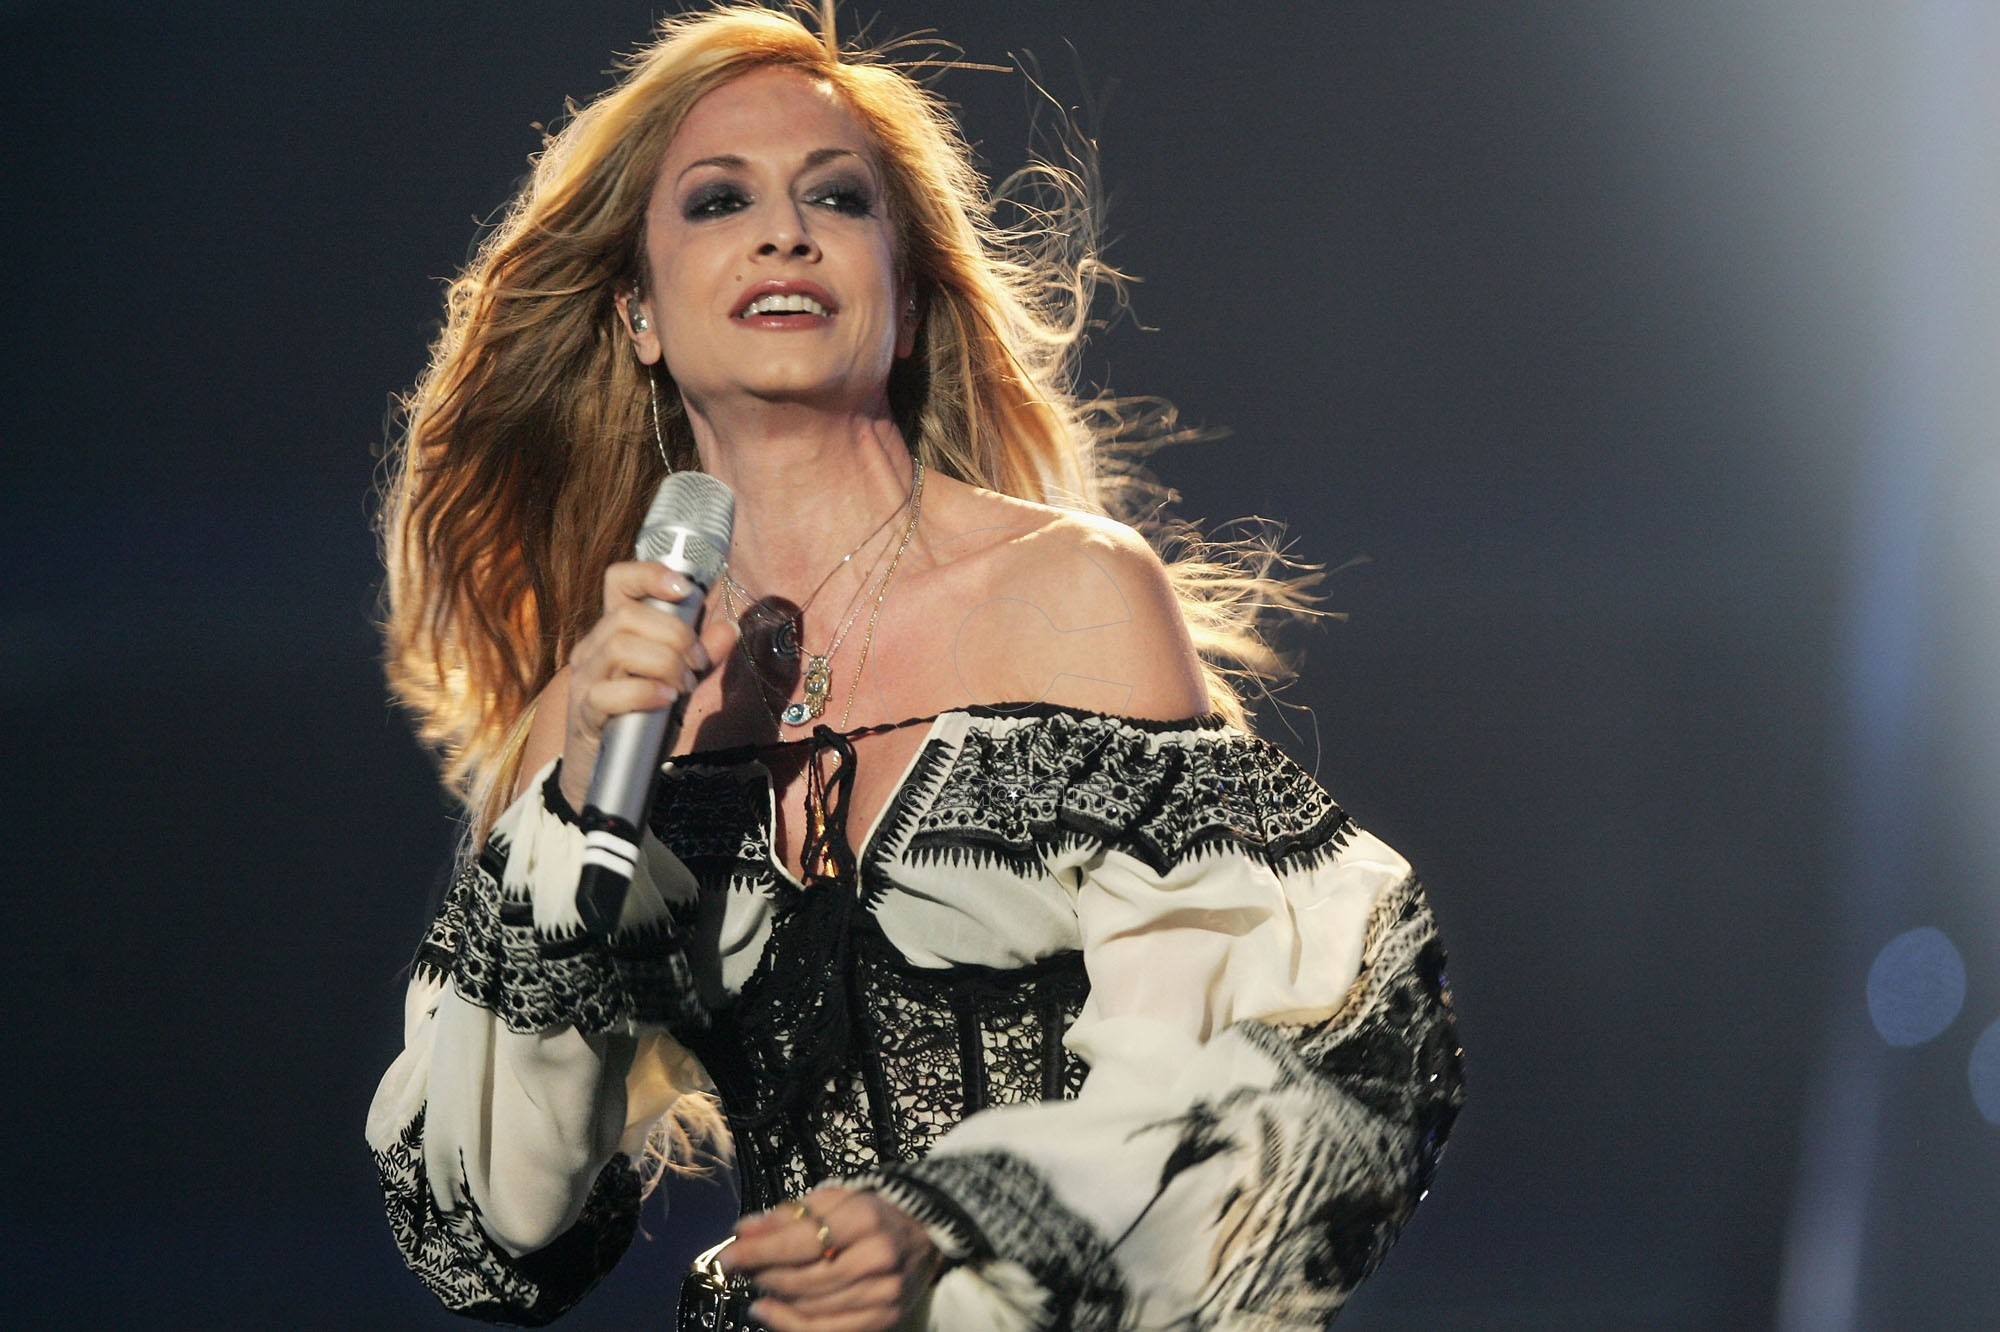 ATHENS - MAY 19: Singer Anna Vissi of Greece performs at the dress rehearsal prior to the finals of the 2006 Eurovision Song Contest May 19, 2006 in Athens, Greece. (Photo by Sean Gallup/Getty Images)